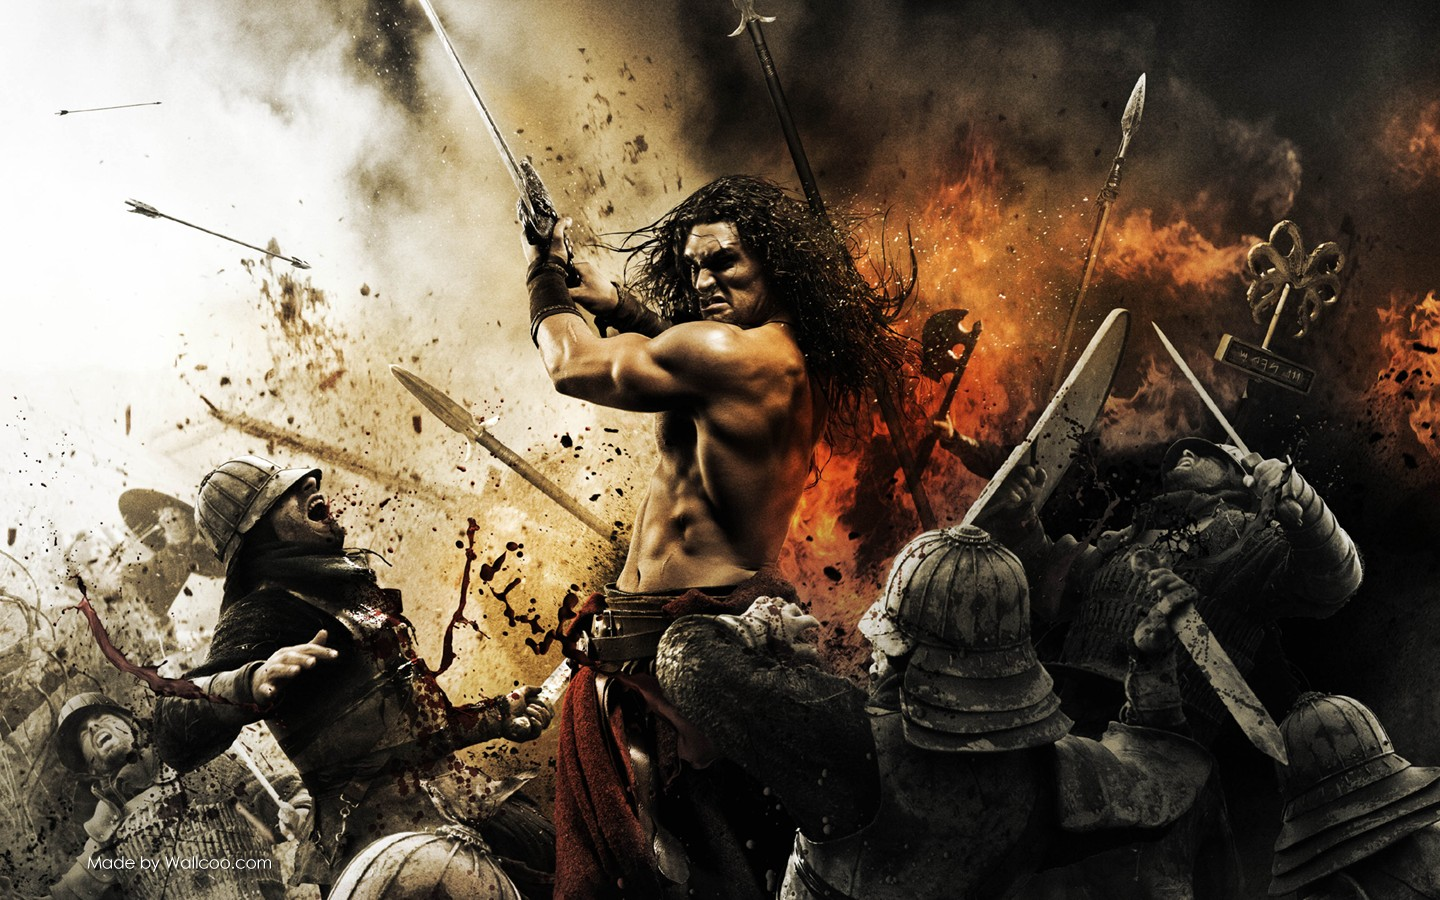 man king conan movie wallpaper 30111 - movie wallpapers - television